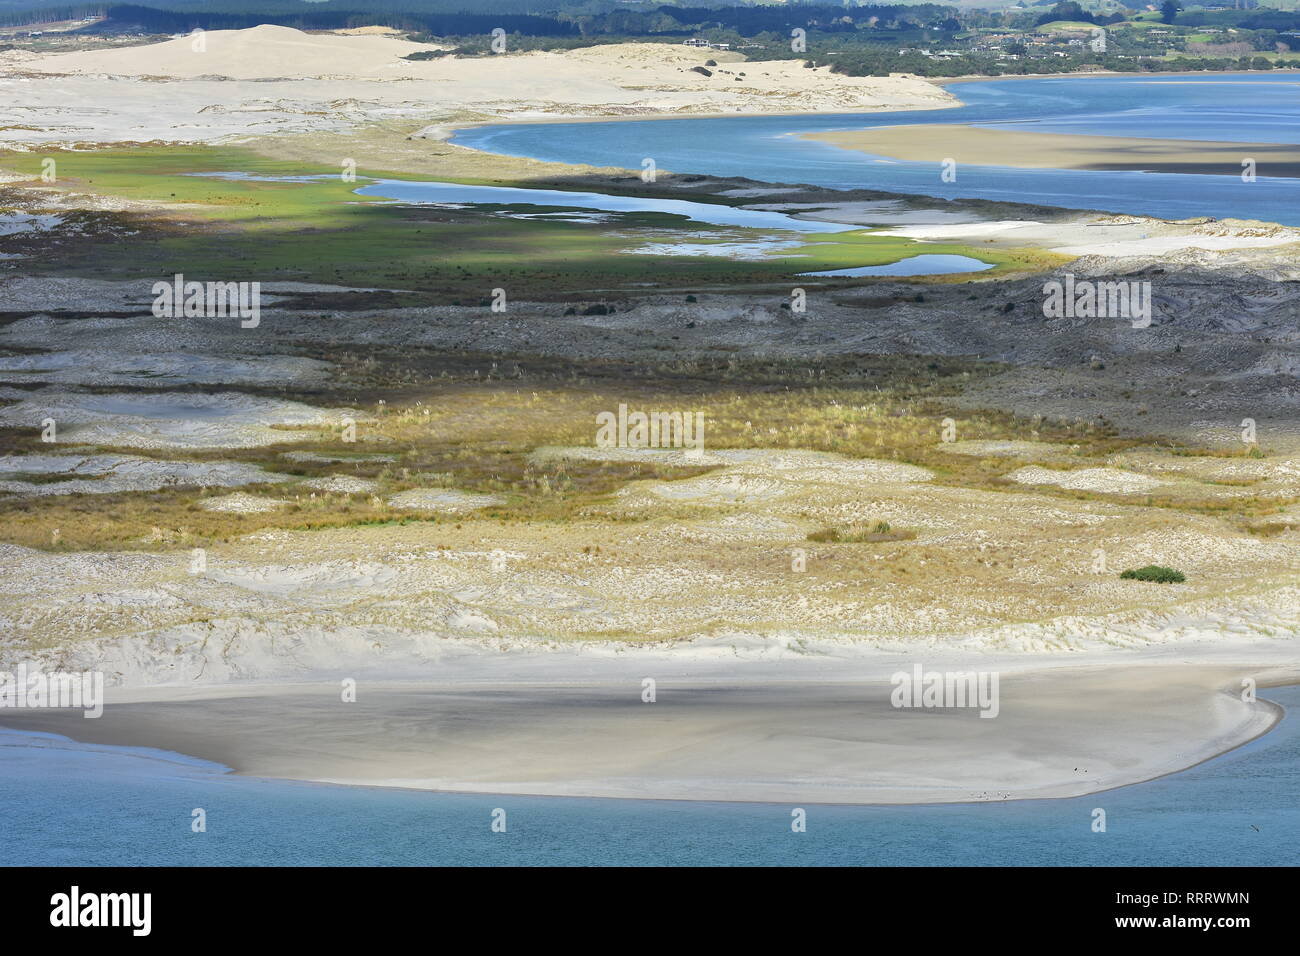 Flat sandy coast with dunes of various colors covered with weeds stretching from open coast to enclosed harbor. - Stock Image